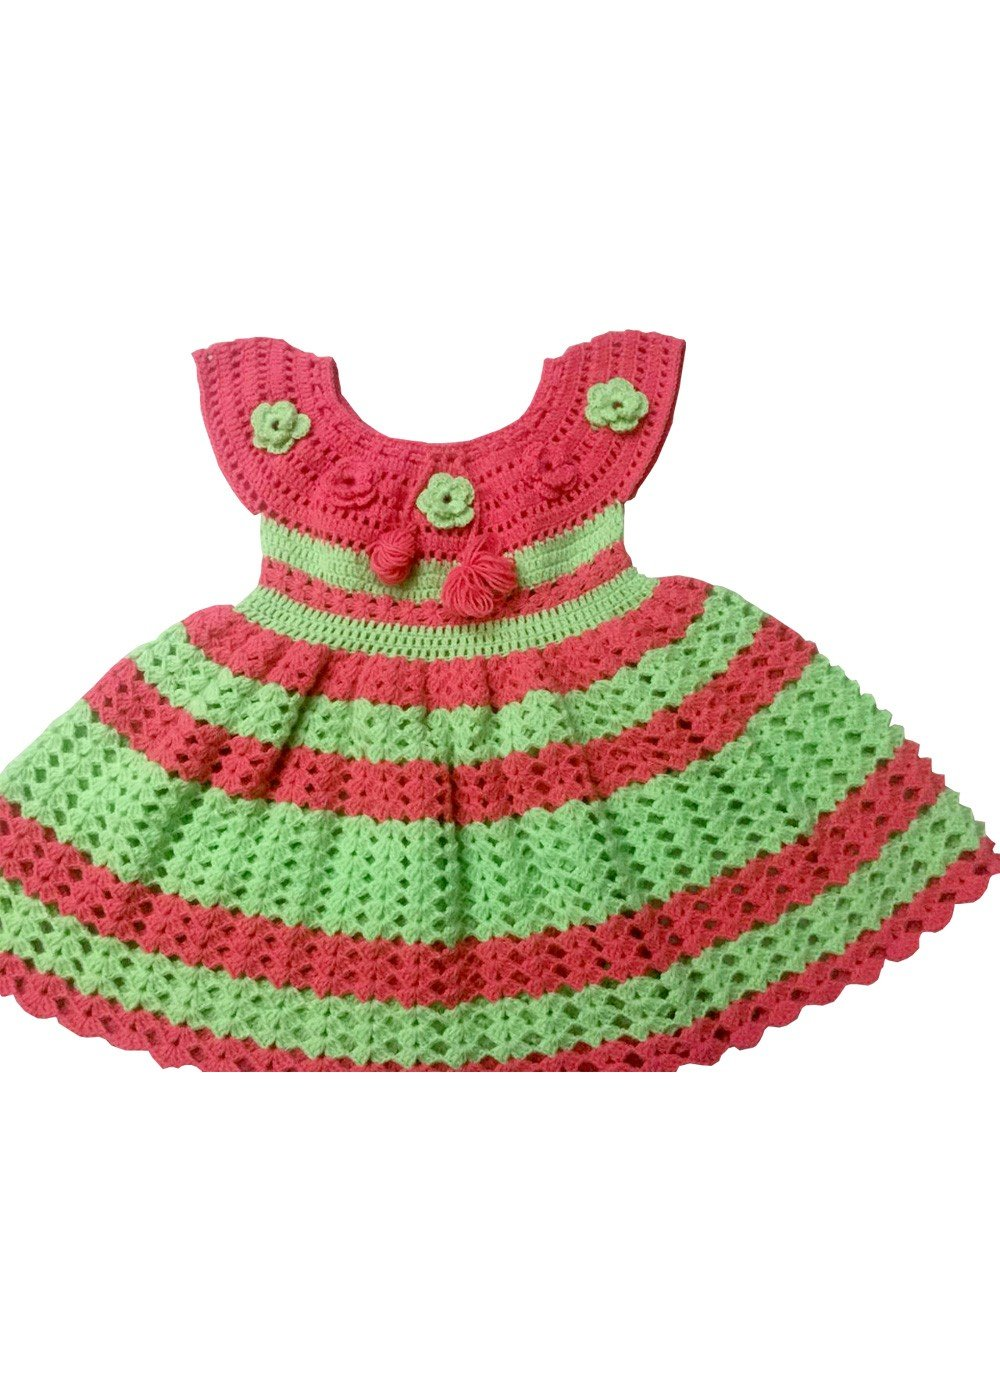 Hand Crocheted Peach Pistachio Green Baby Dress